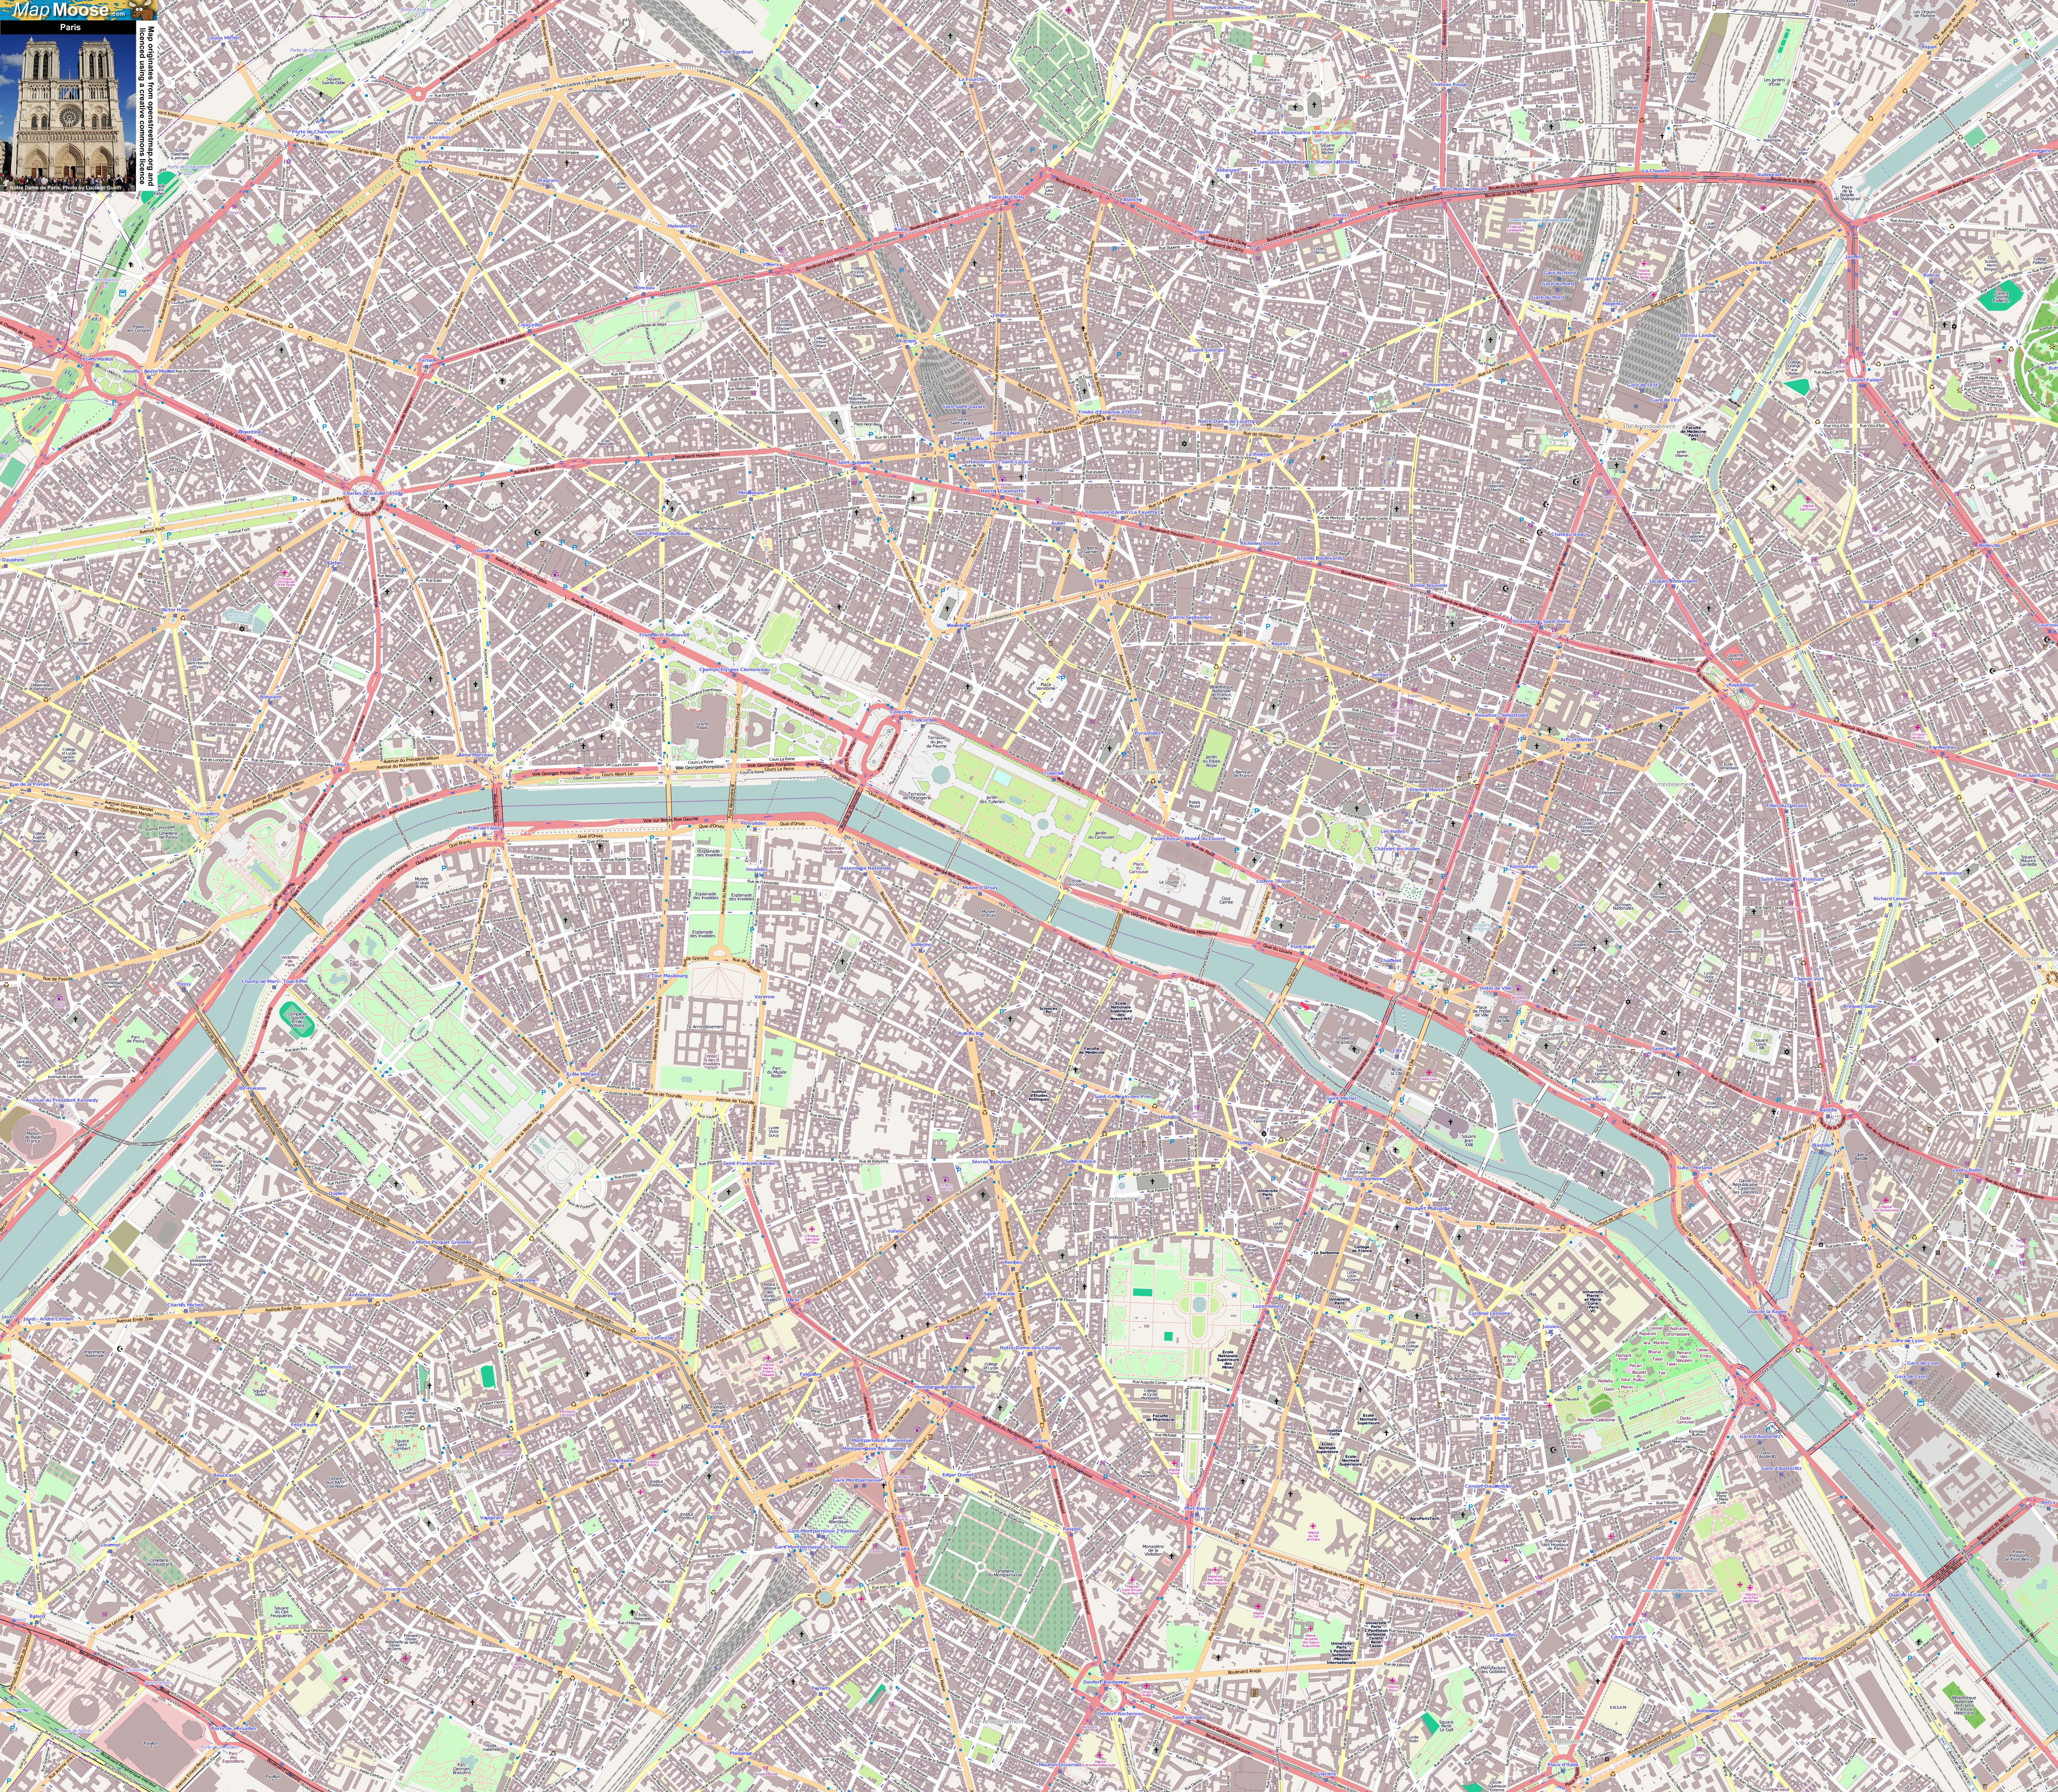 Street Map Of Paris | Travel Maps And Major Tourist Attractions Maps - Paris Street Map Printable